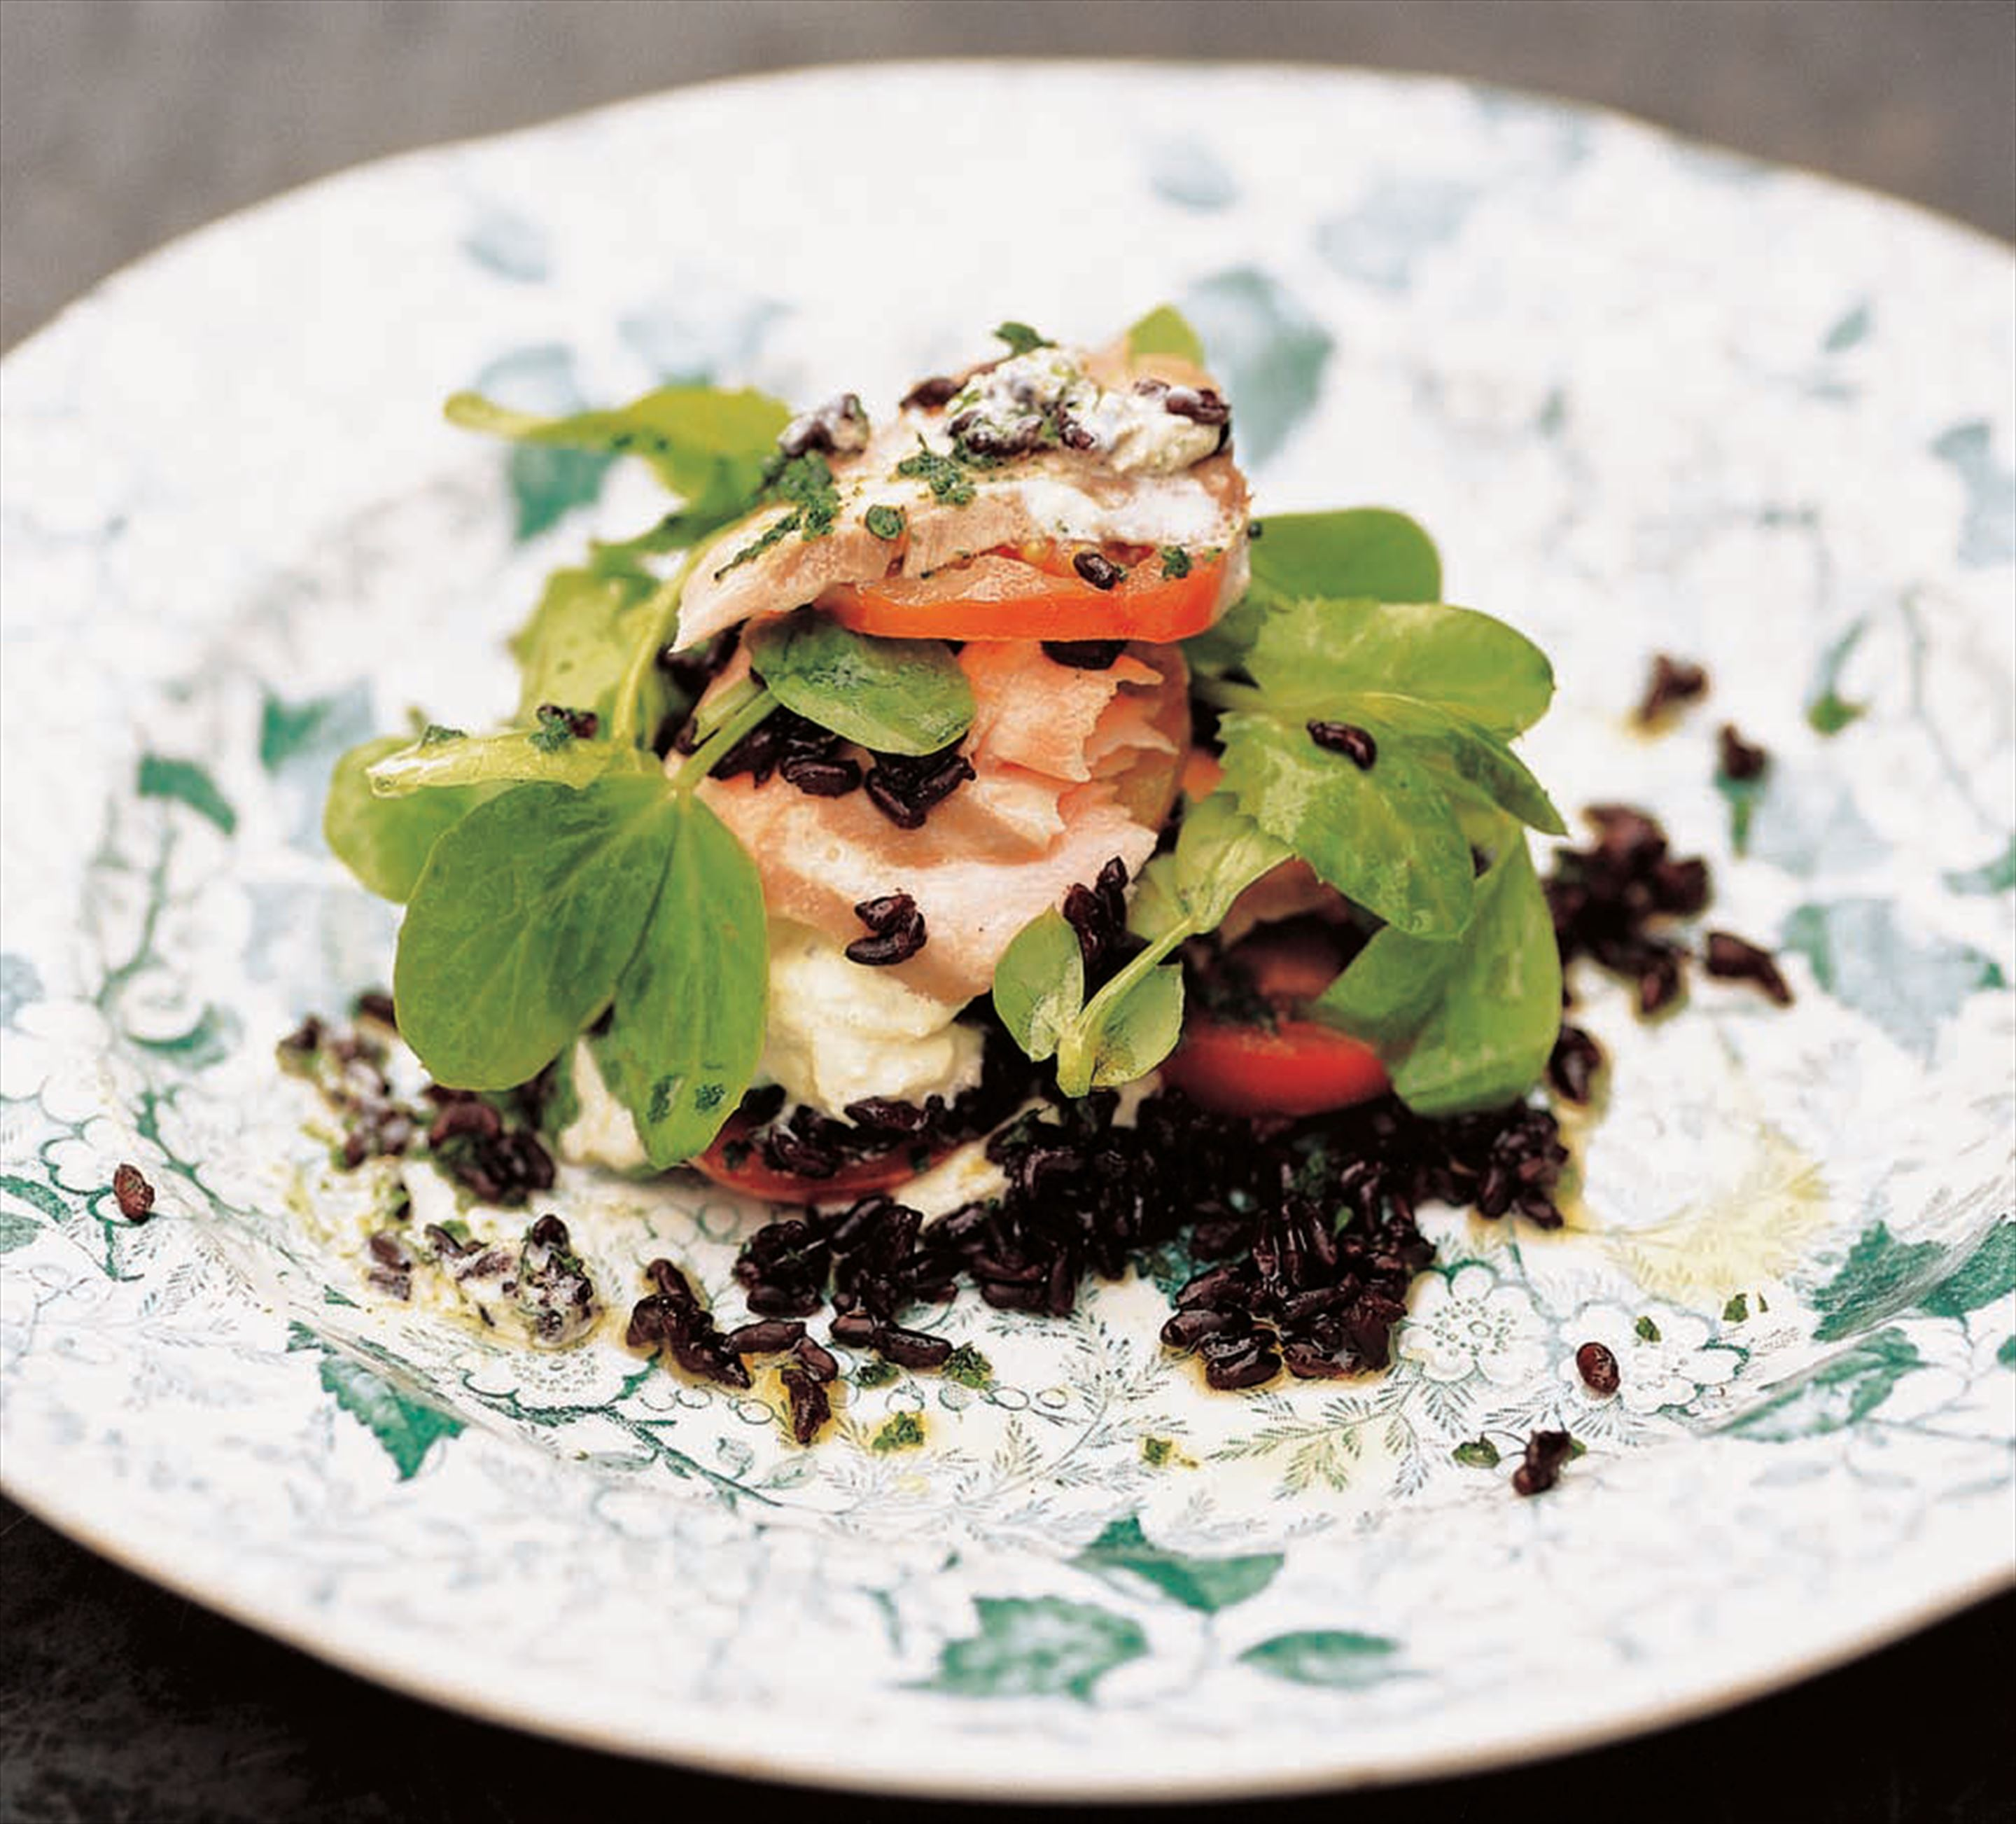 Salad of poached salmon, black rice and watercress